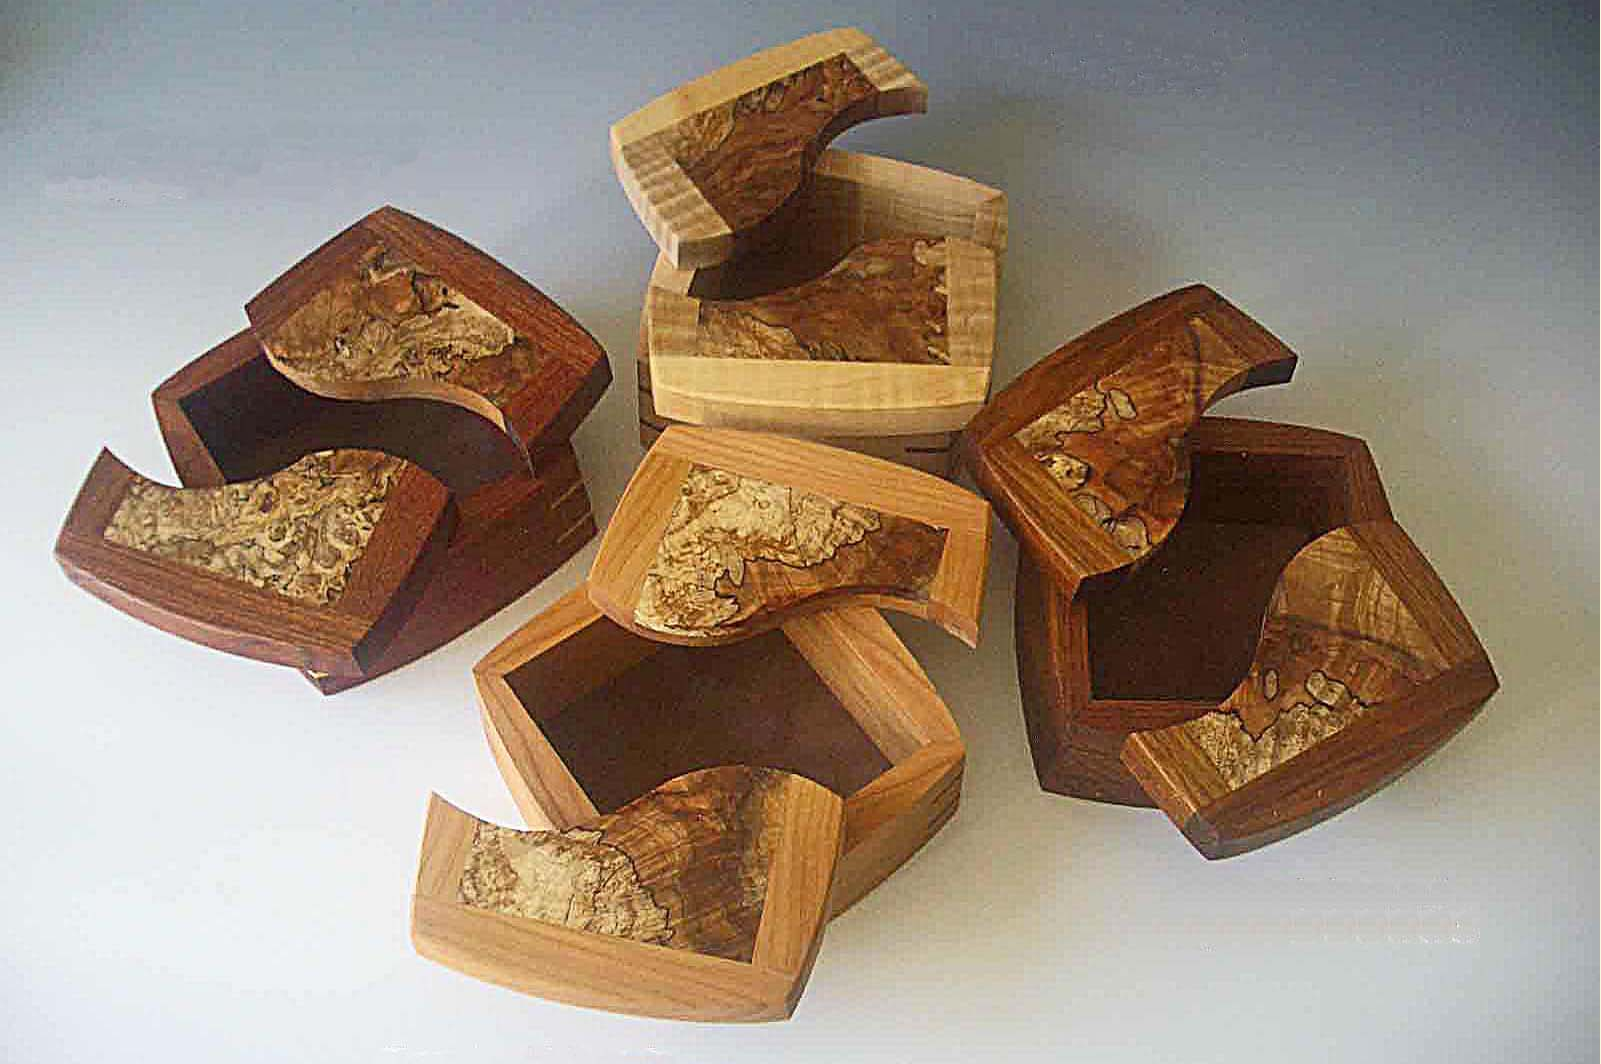 Wooden Decorative Boxes Like The Split Tops  Wooden Boxes  Pinterest  Best Wooden